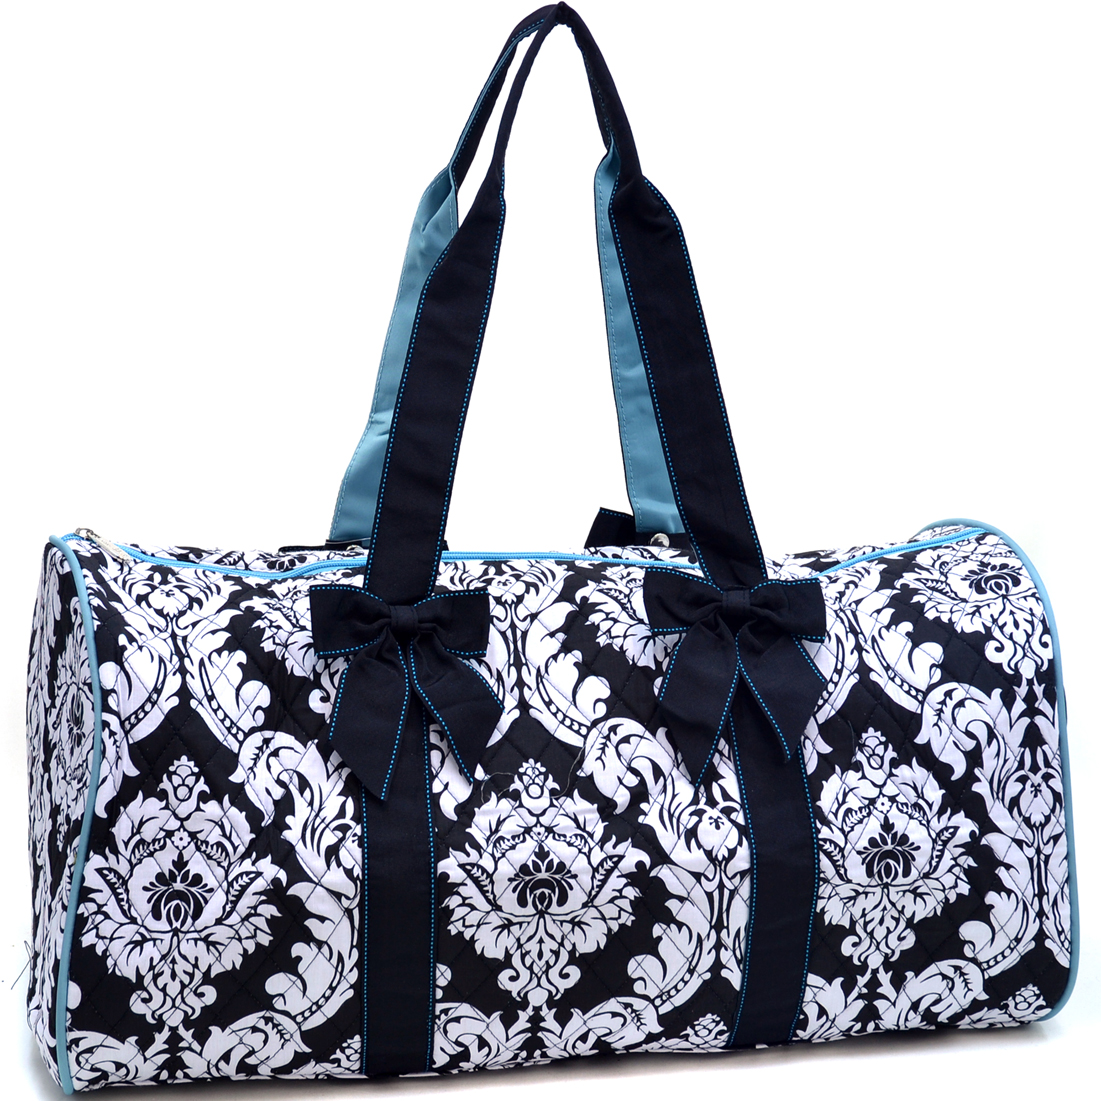 Rosen Blue® Large Quilted Duffle Bag with Bow Decor in Damask Print